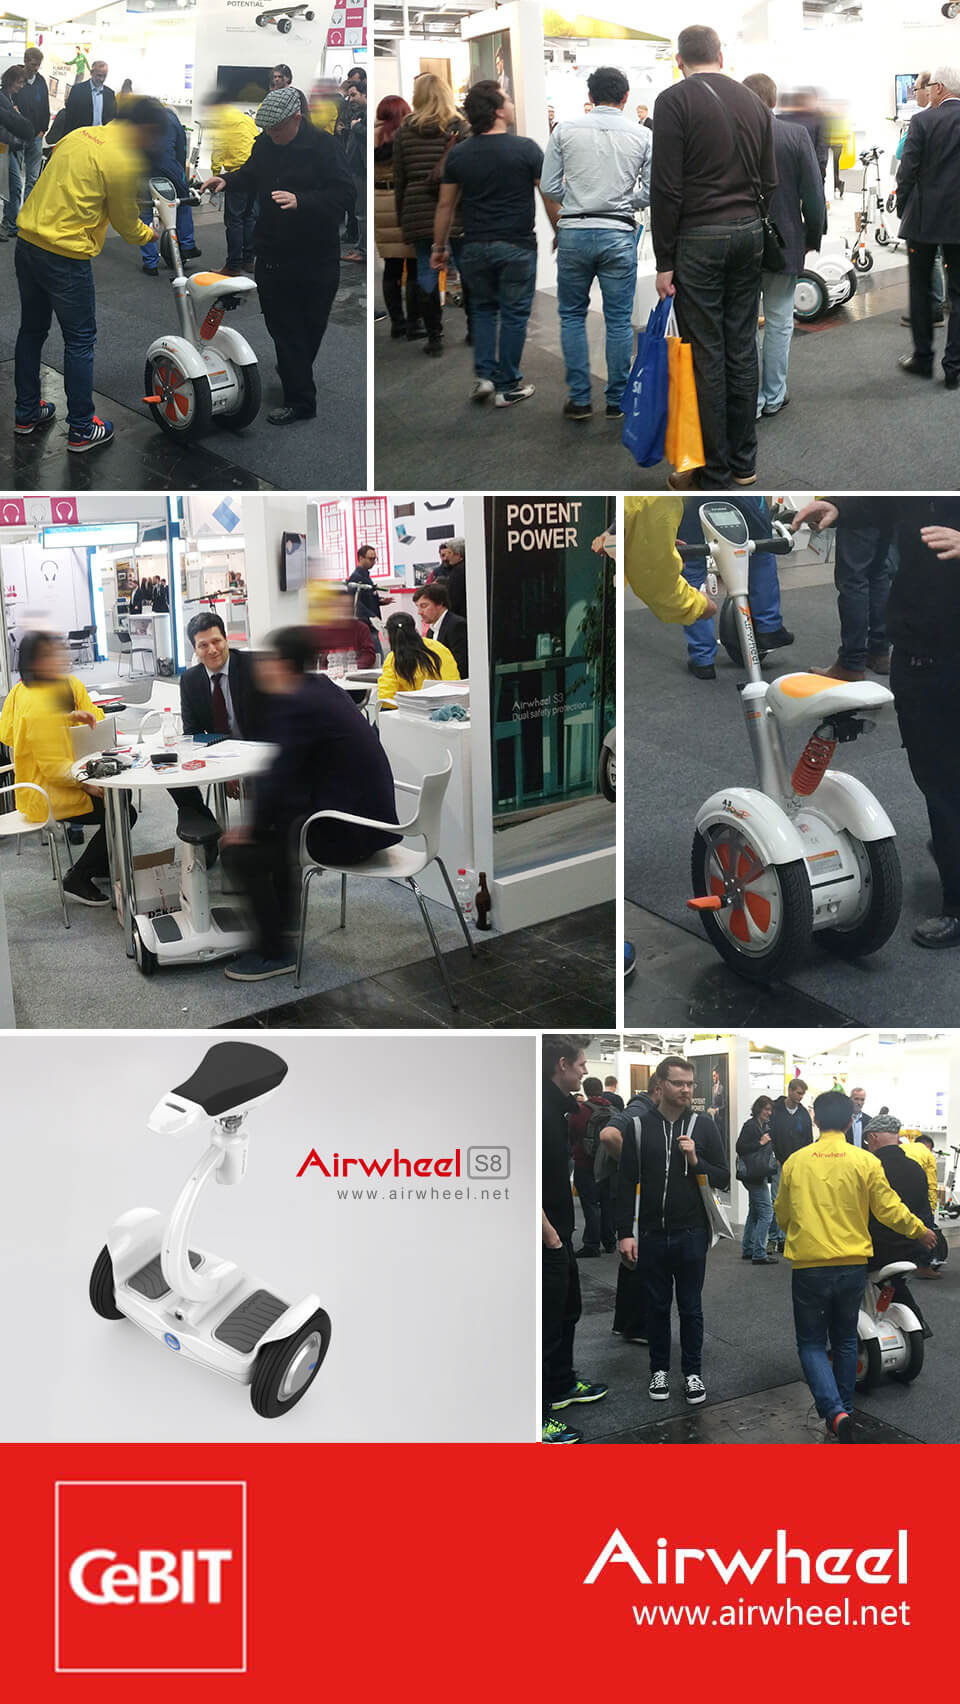 Airwheel S8 two wheel saddle-equipped scooter